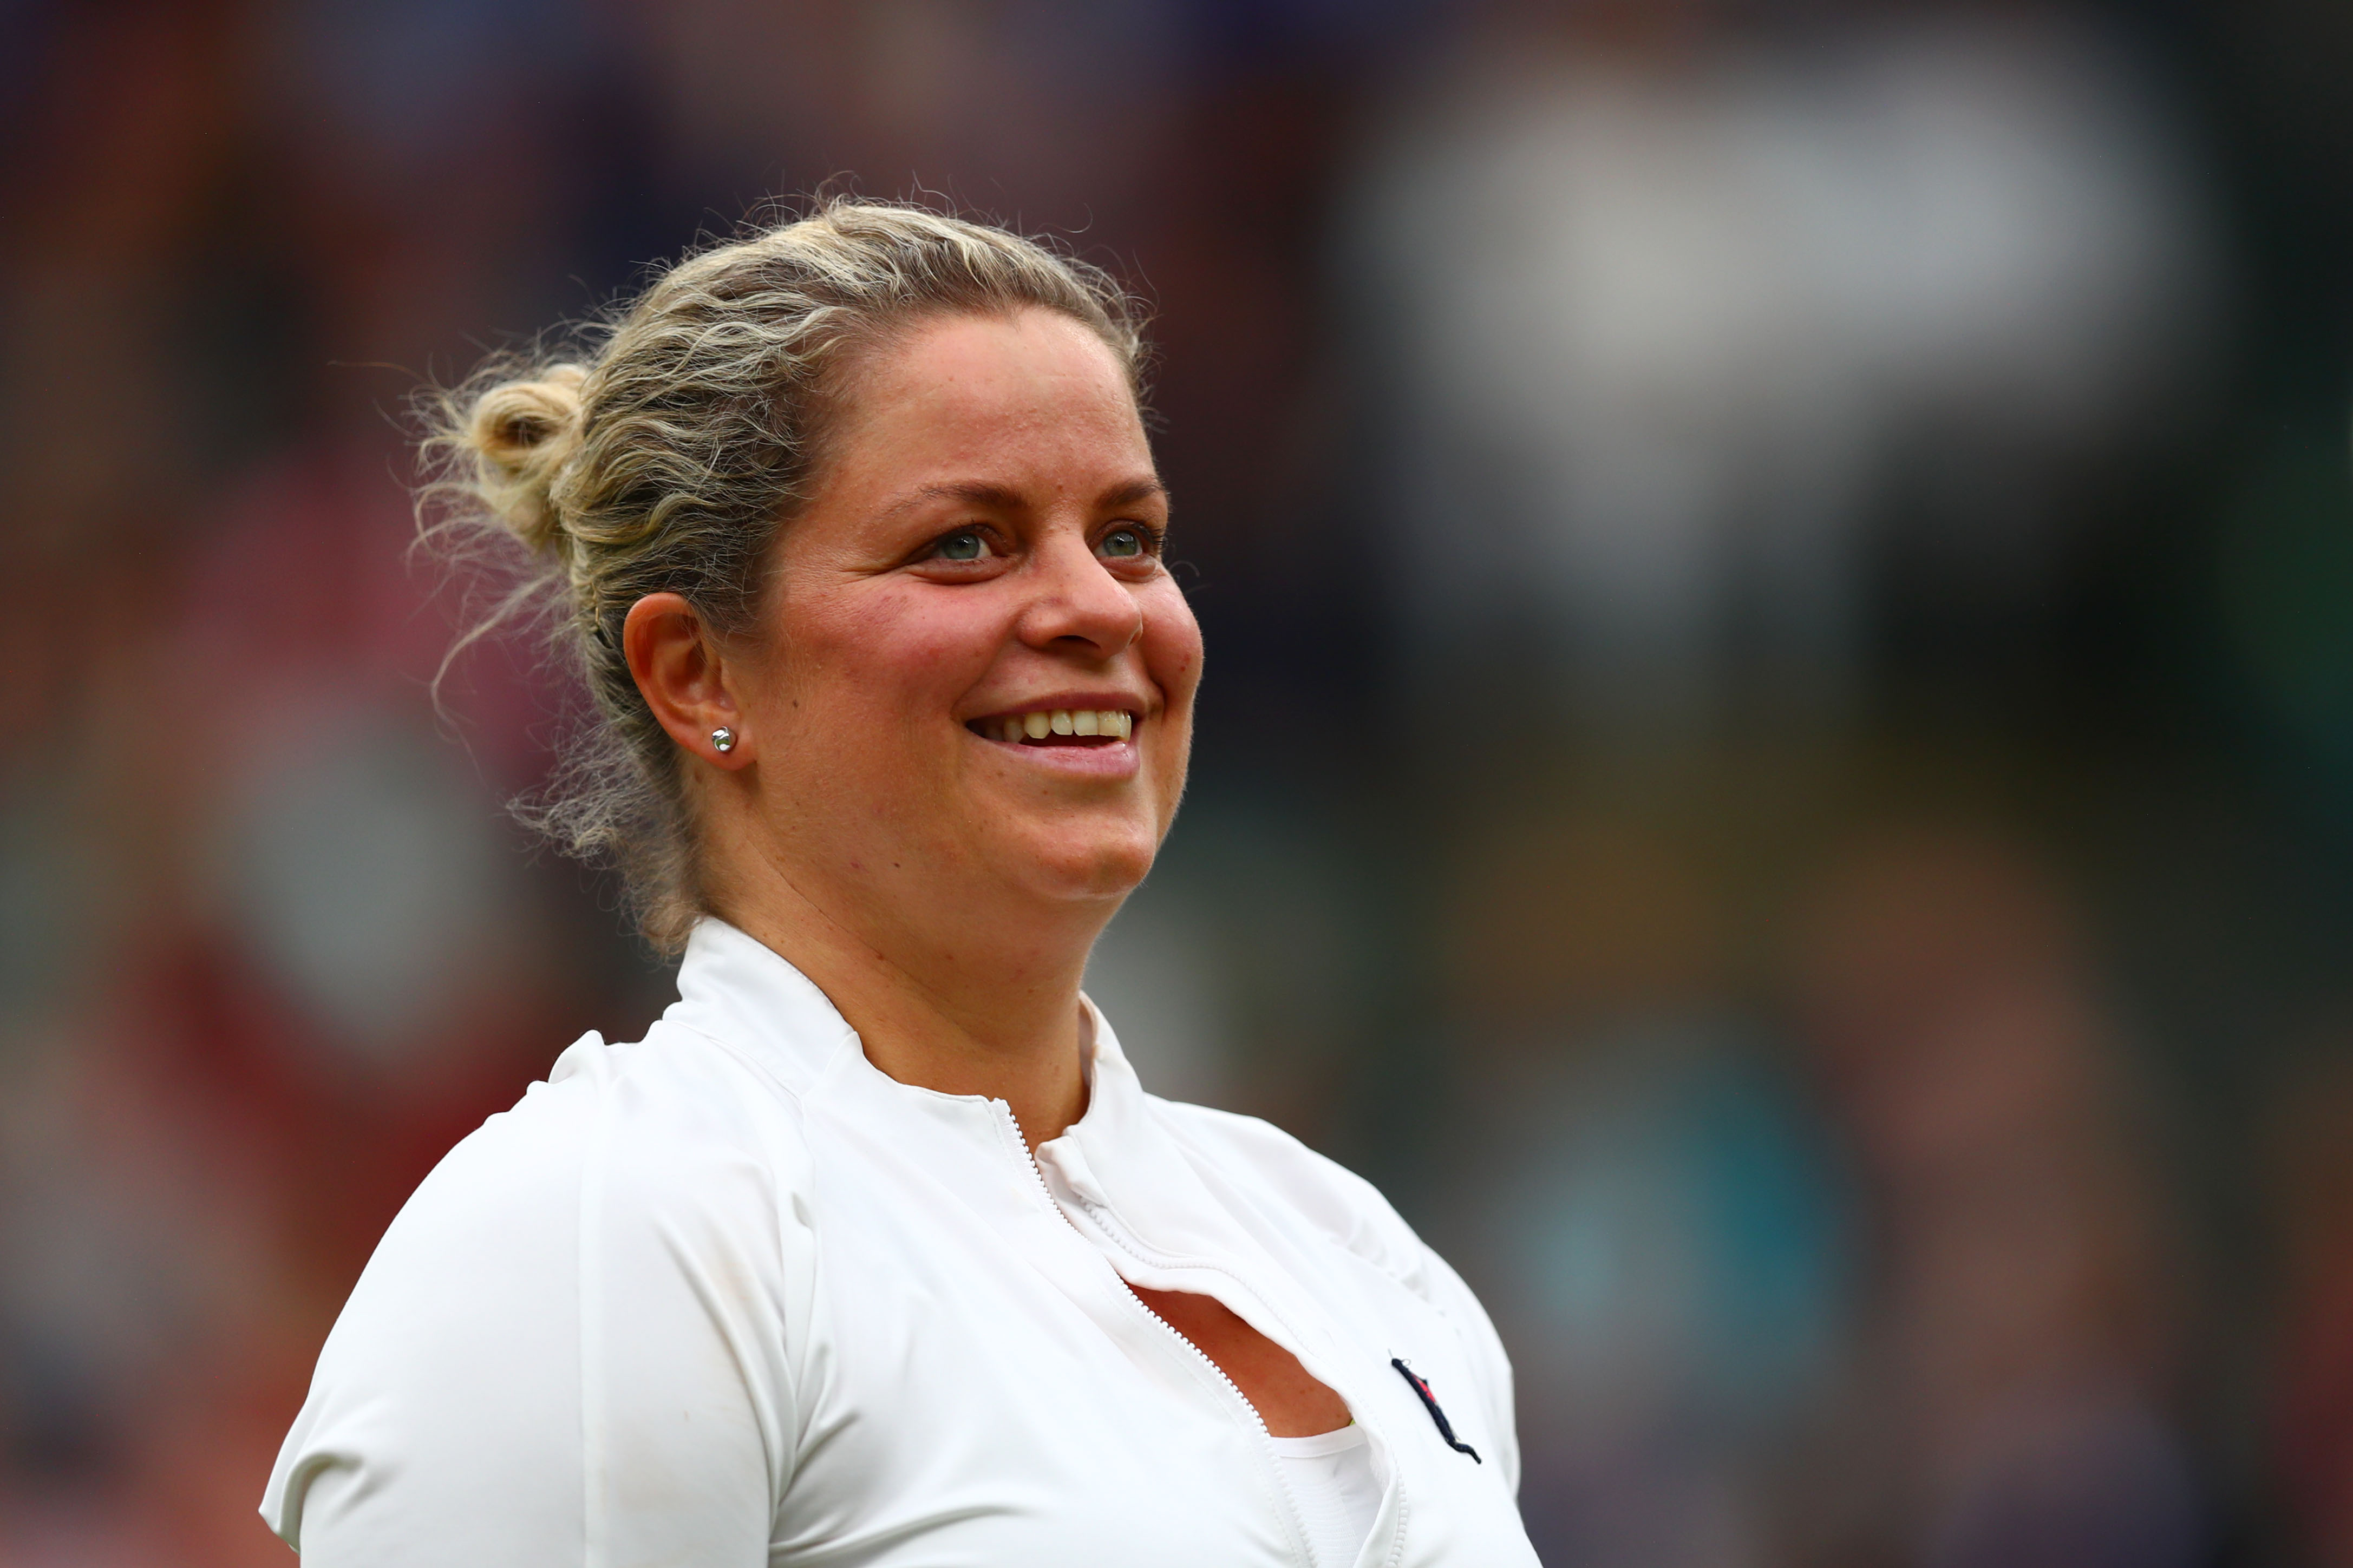 'Everyone will want to play her' - WTA coaches' views on the return of Kim Clijsters in 2020